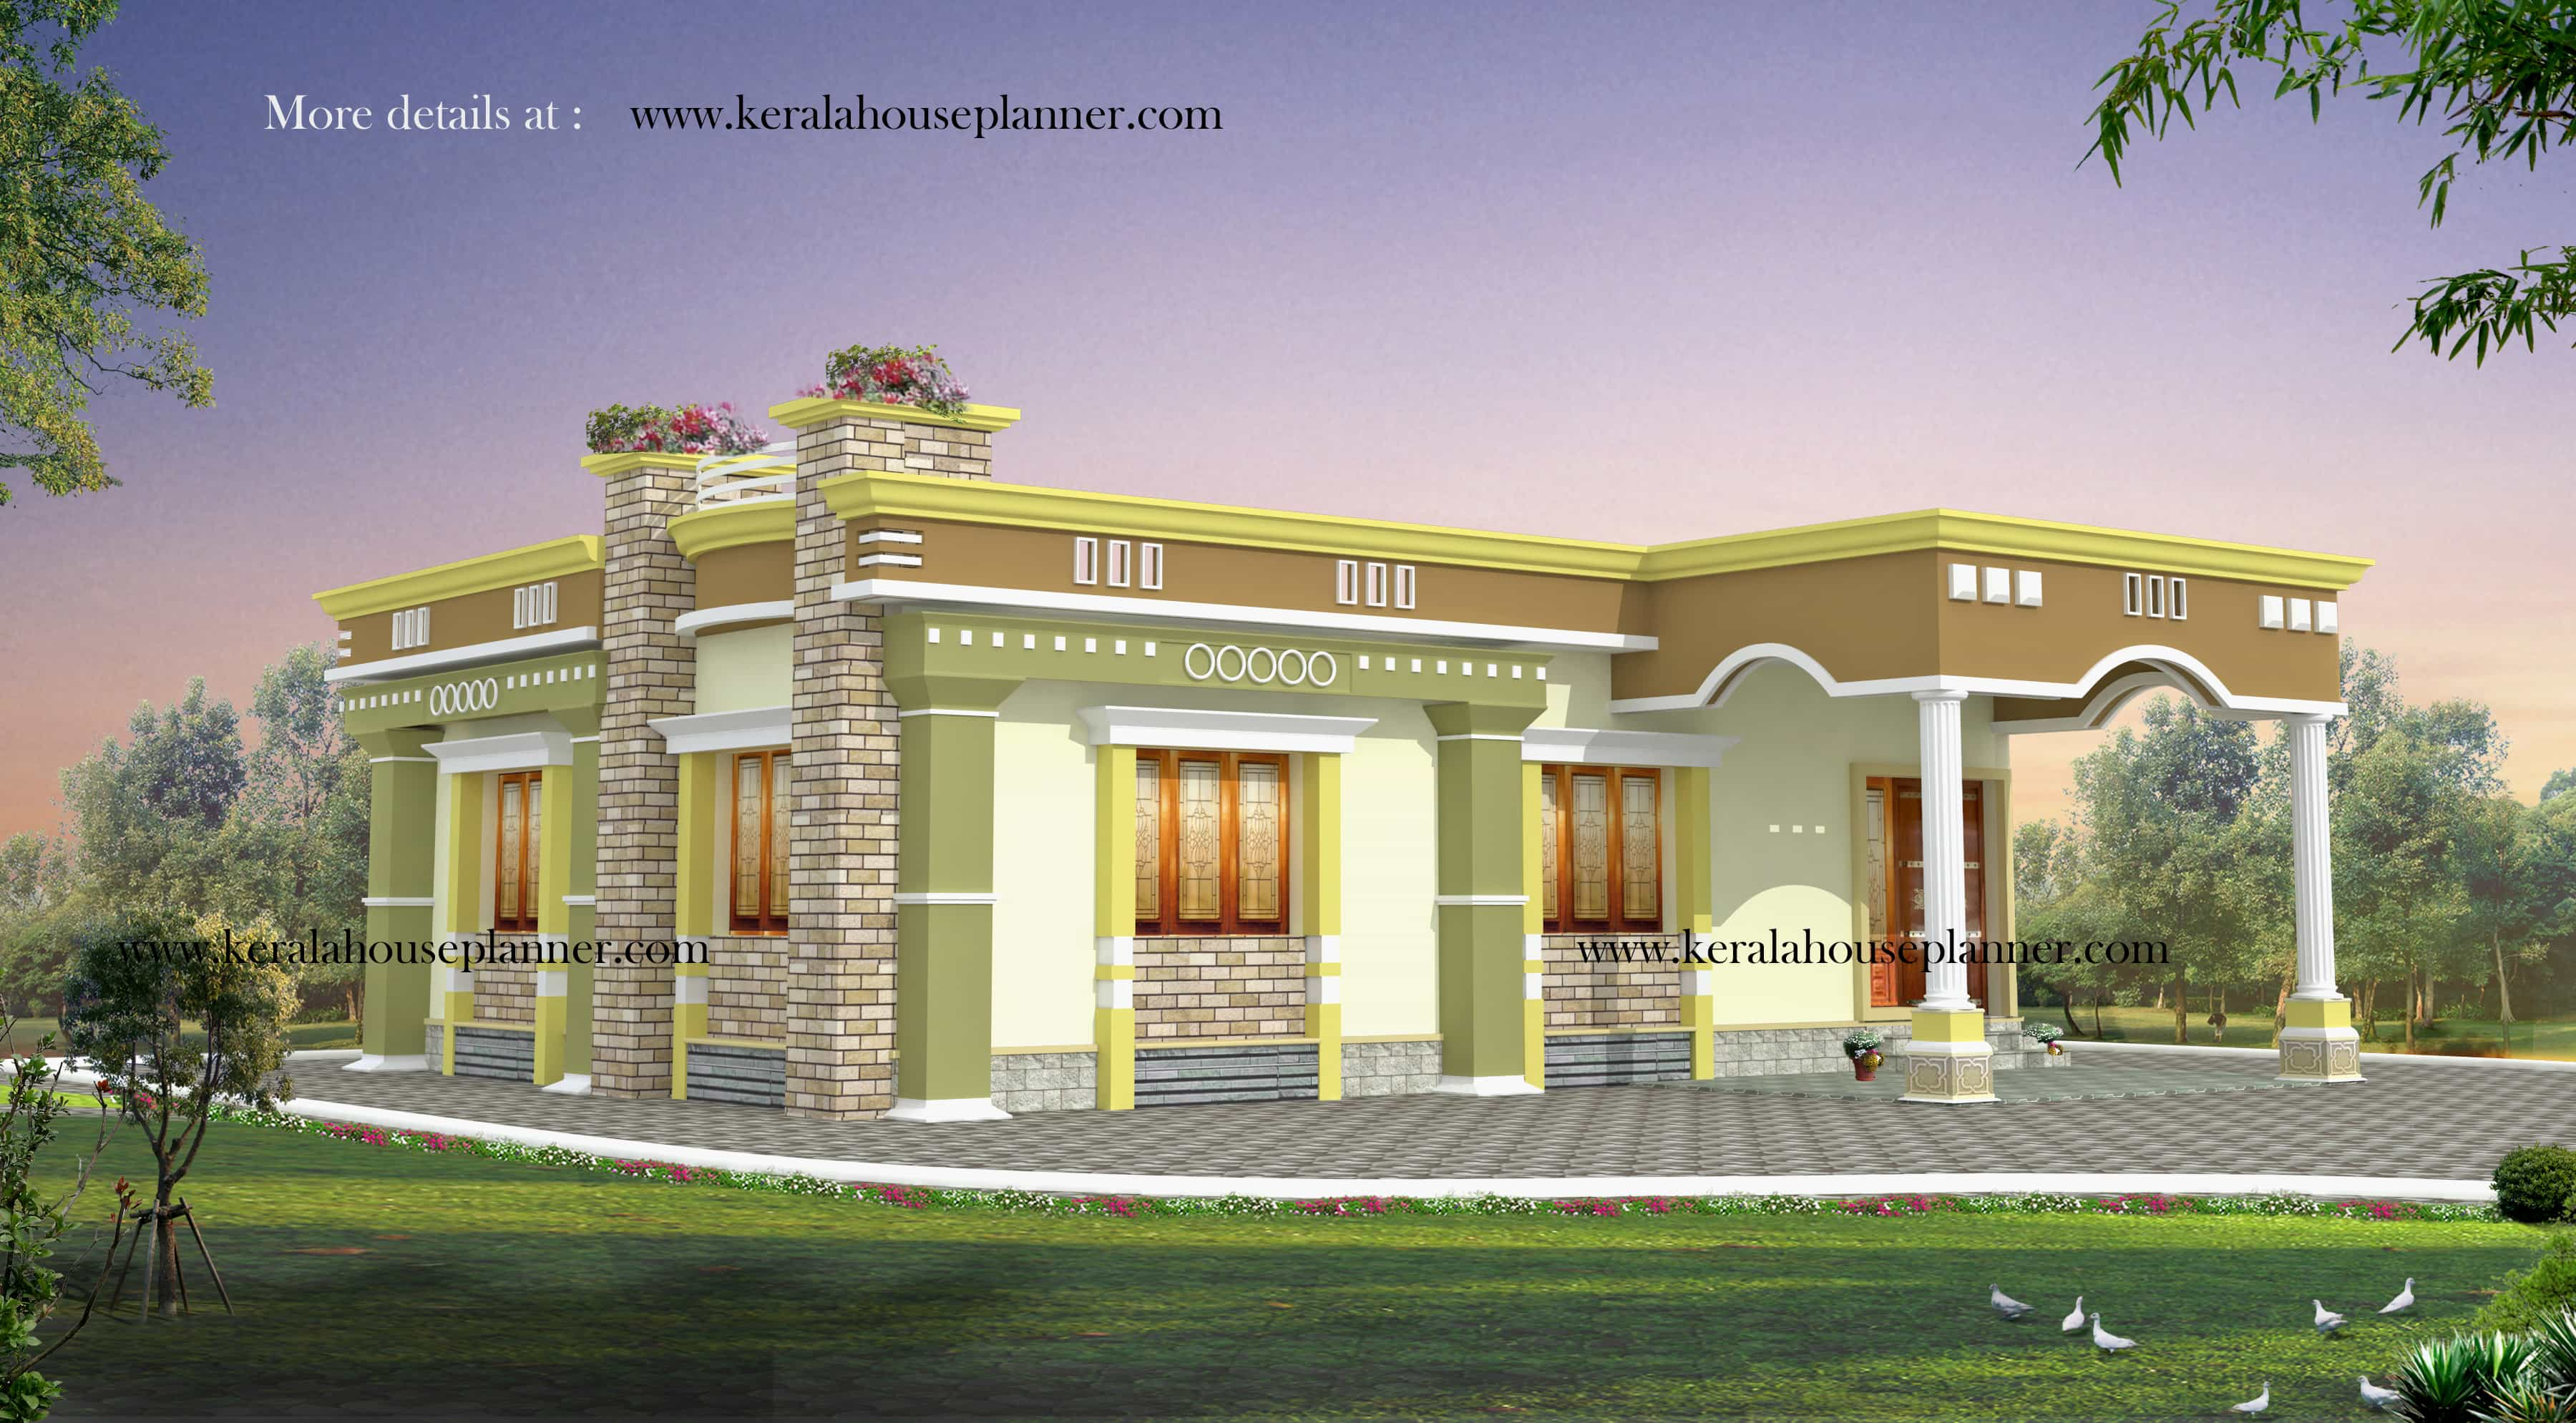 Kerala house plans 1200 sq ft with photos khp House design program